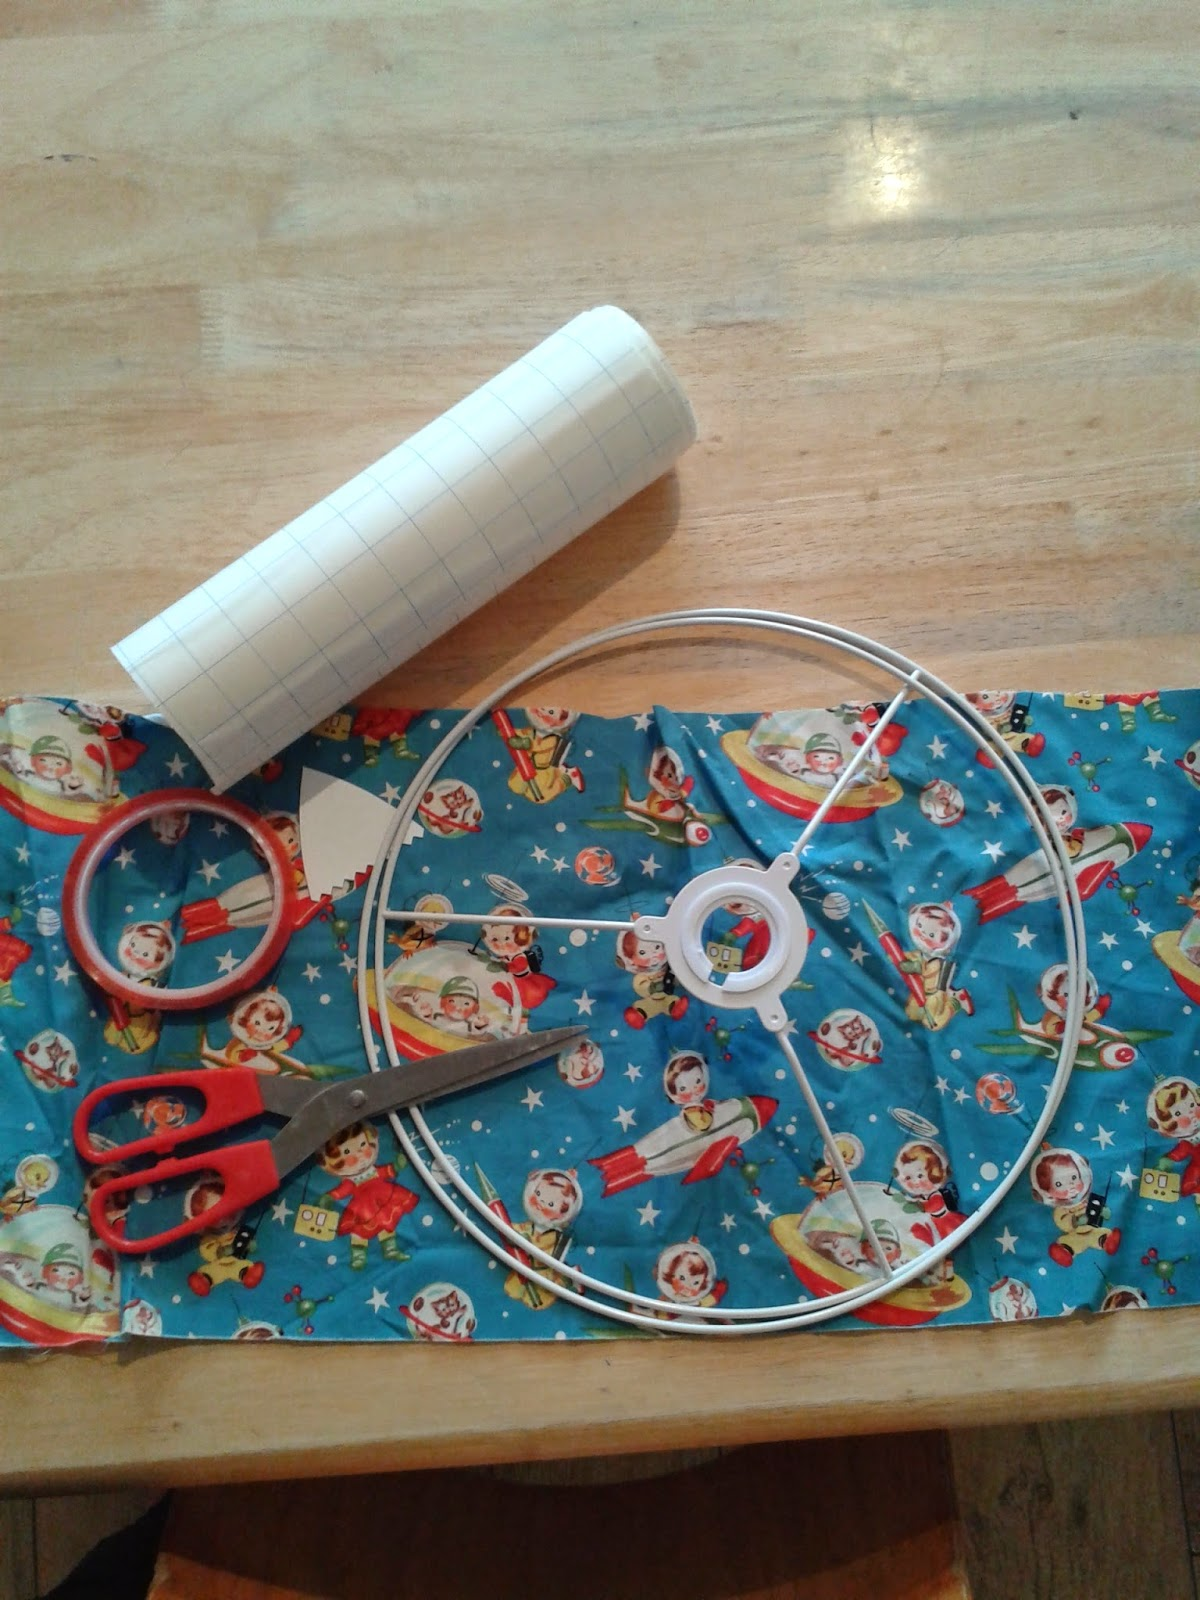 lampshade making kit at Creative Biscuit workshop